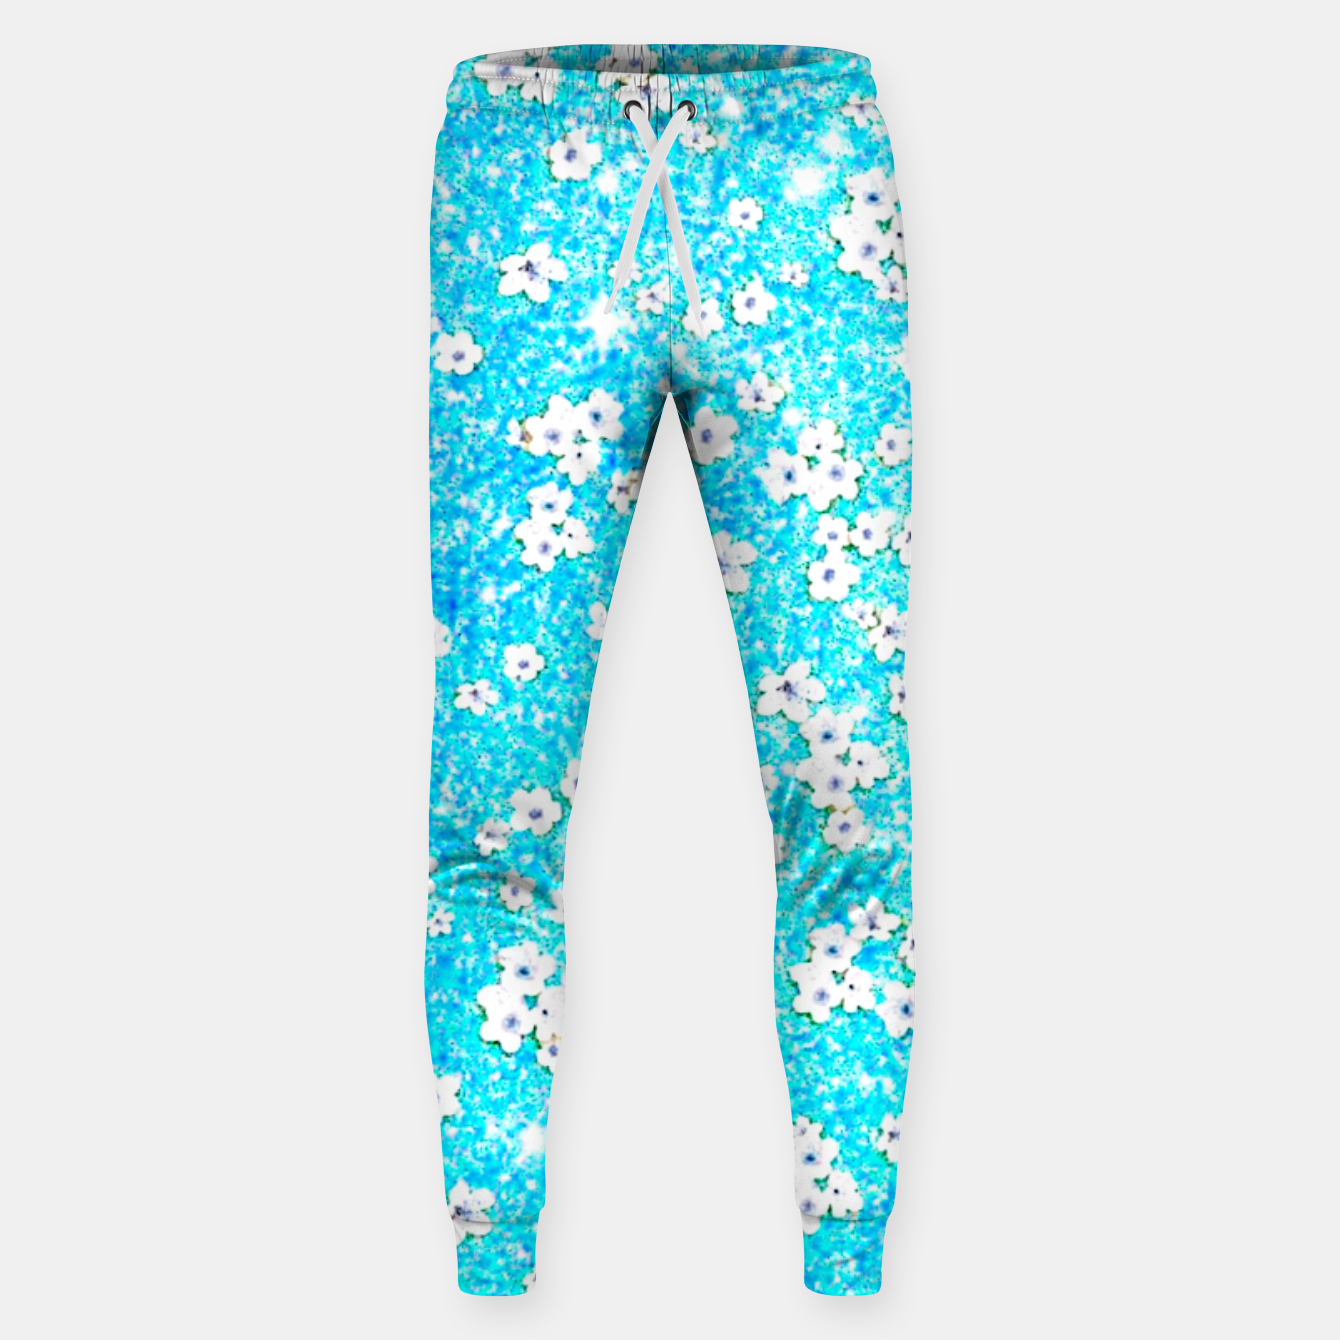 Zdjęcie turquoise blue white floral pattern Sweatpants - Live Heroes